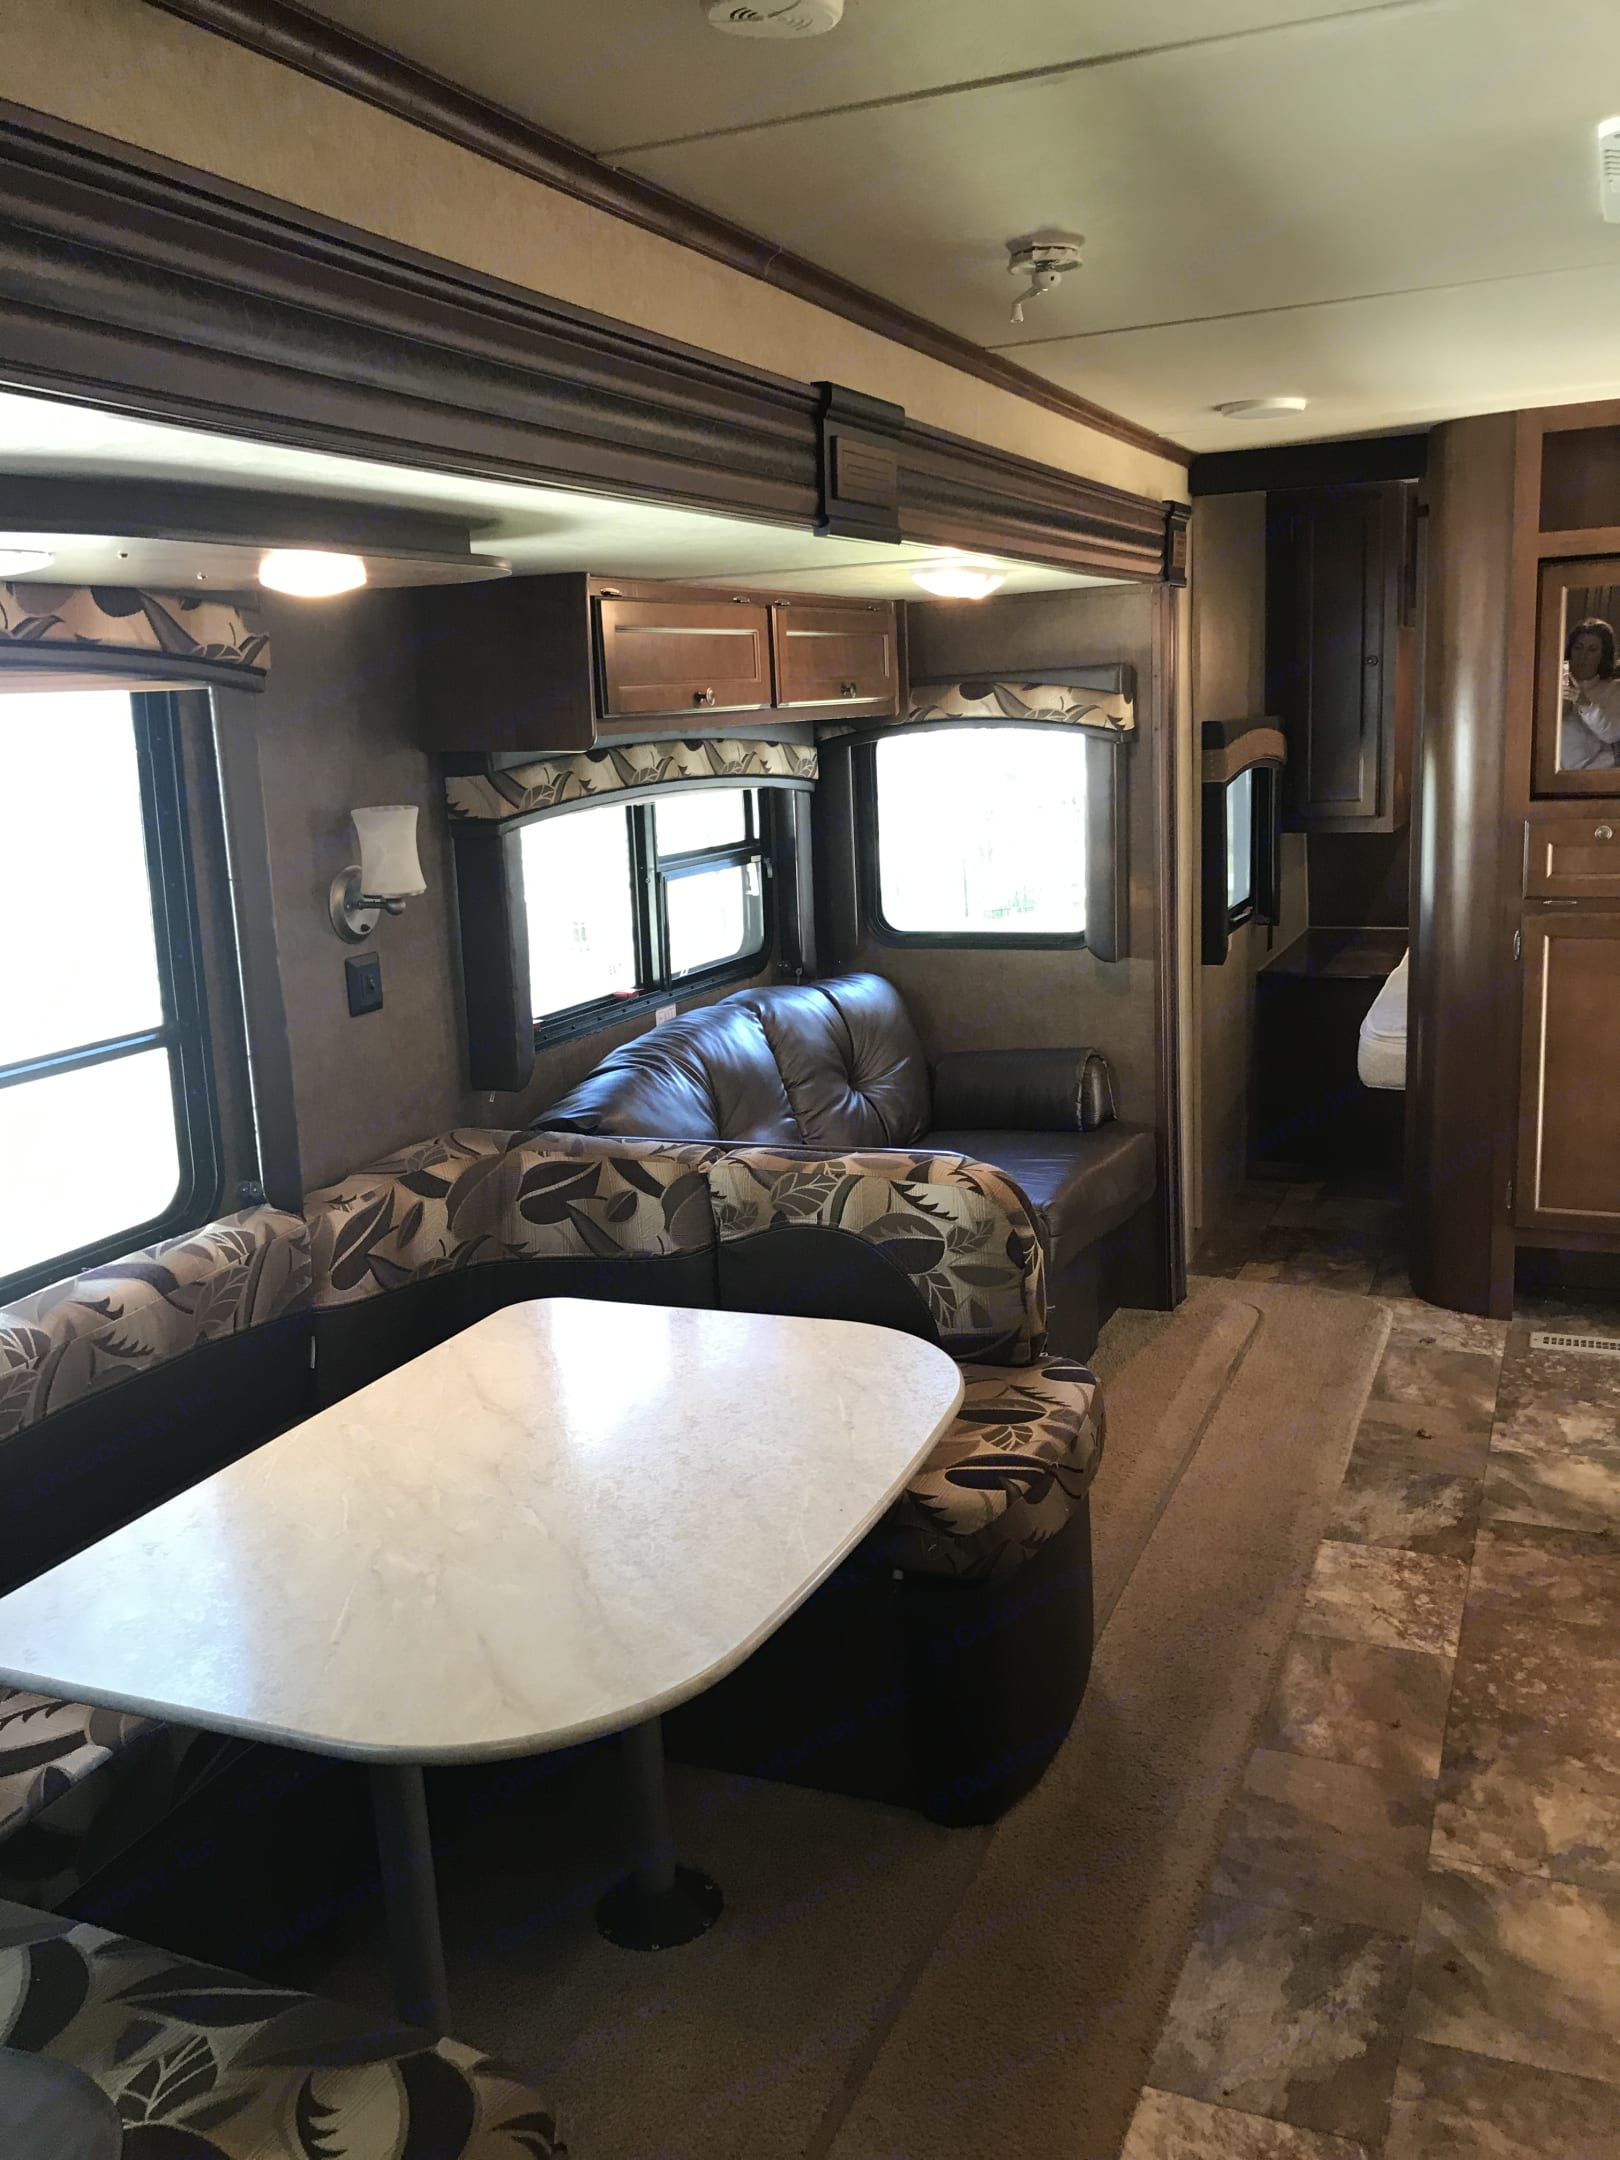 Look at all this space.  This is the perfect family bunkhouse for your camping adventures.  Our camper has 2 ac units, a fantastic indoor kitchen, an amazing outdoor kitchen, a brand new extra large awning for shade, new tires, and everything you need for your next family adventure. . Jayco Jay Flight 2015